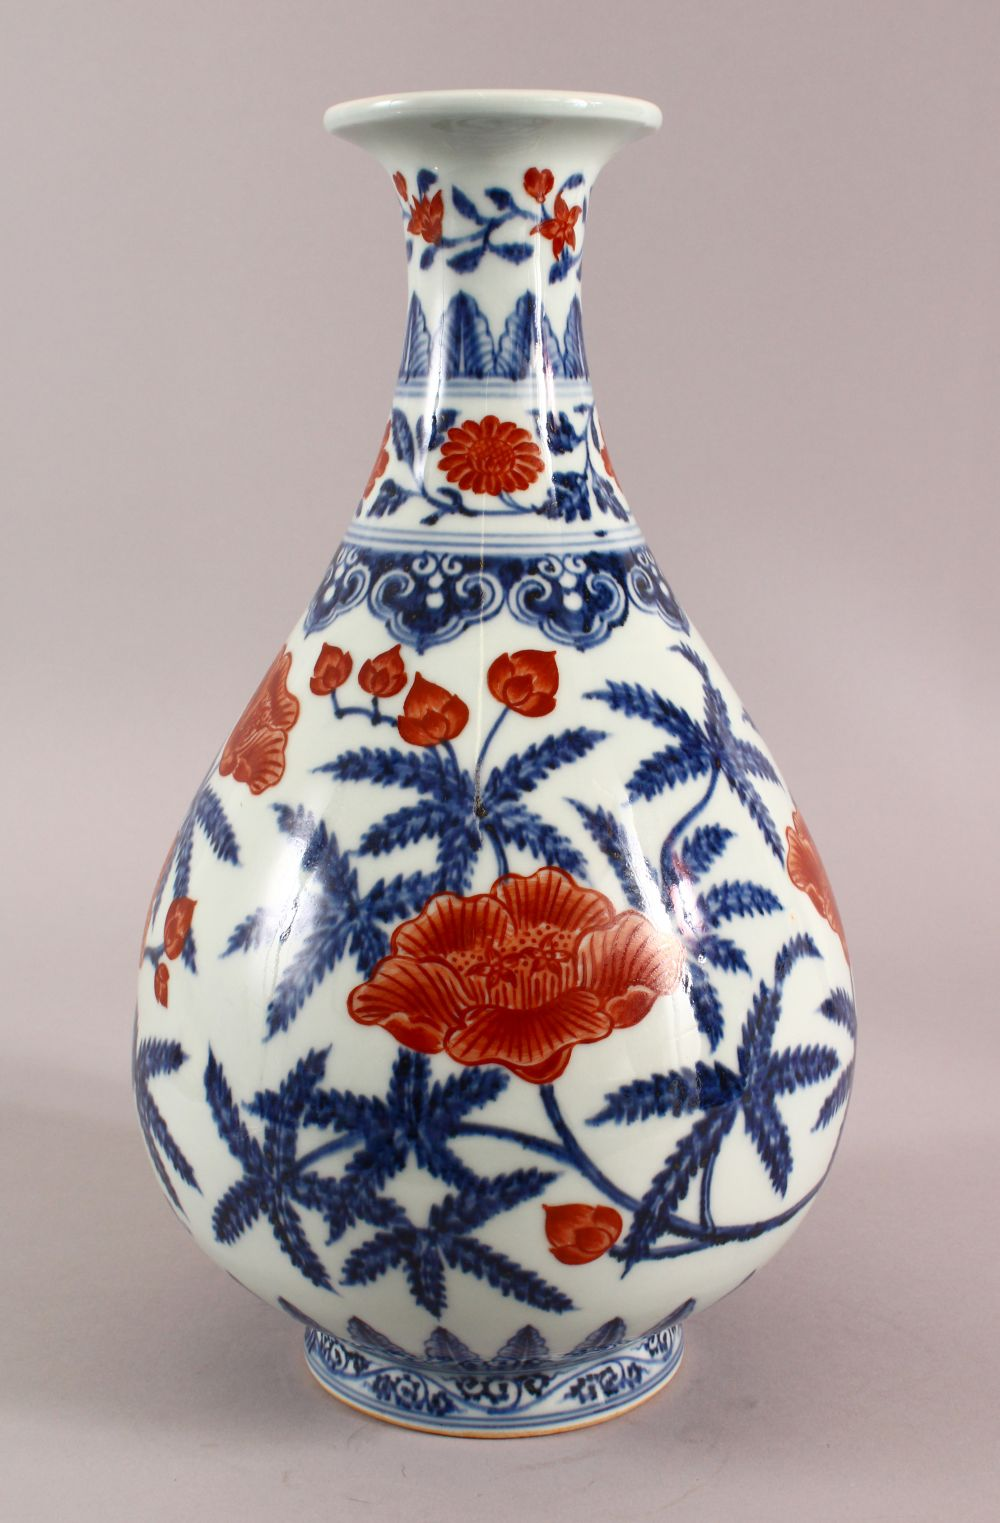 A CHINSE UNDEGLAZED BLUE & COPPER RED LOTUS PORCELAIN VASE, the base with a six character mark, 34cm